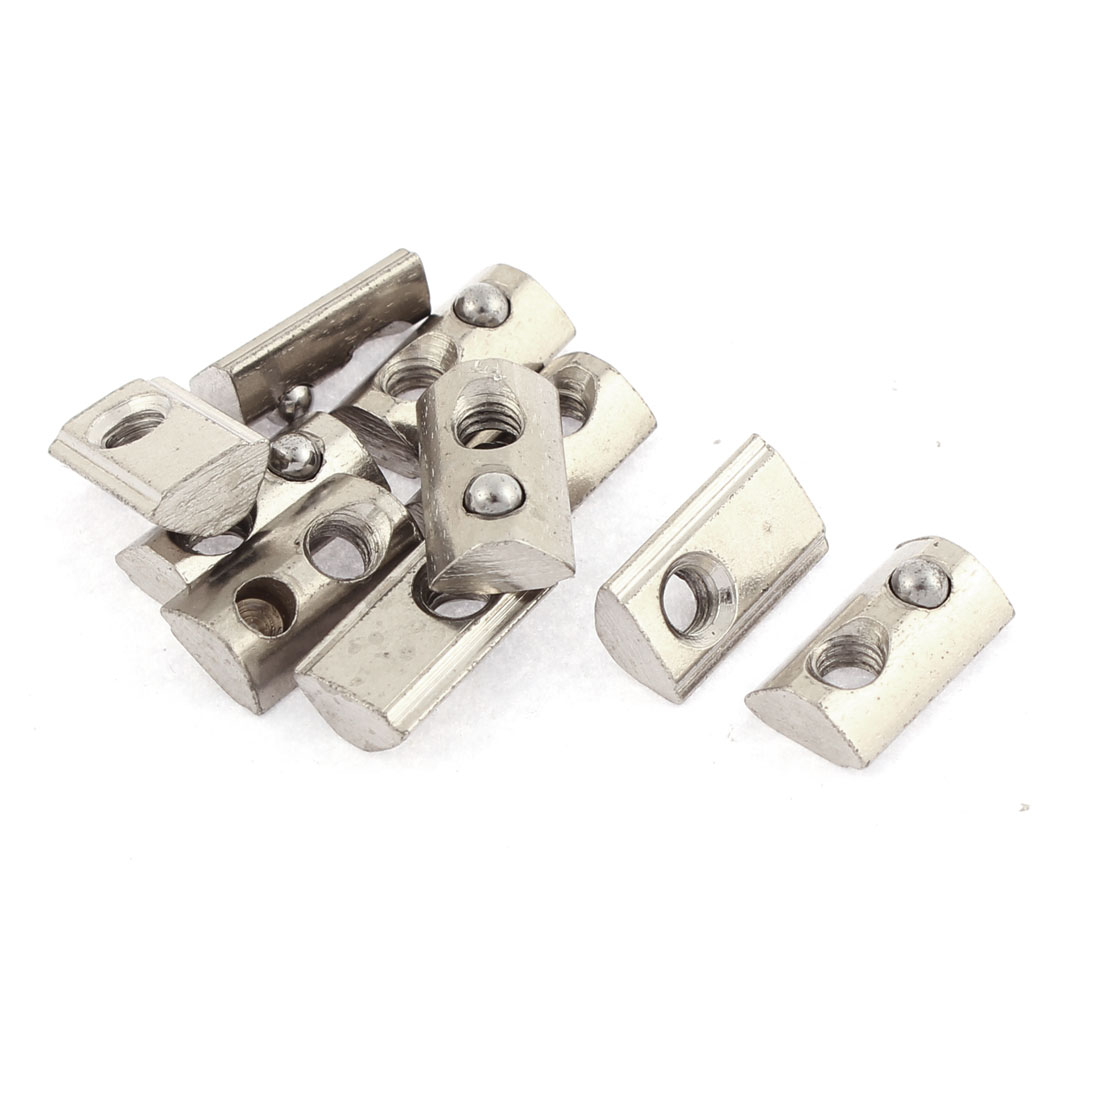 M4 Metal Half Round Roll in T-slot Ball Spring Nut Groove 10pcs